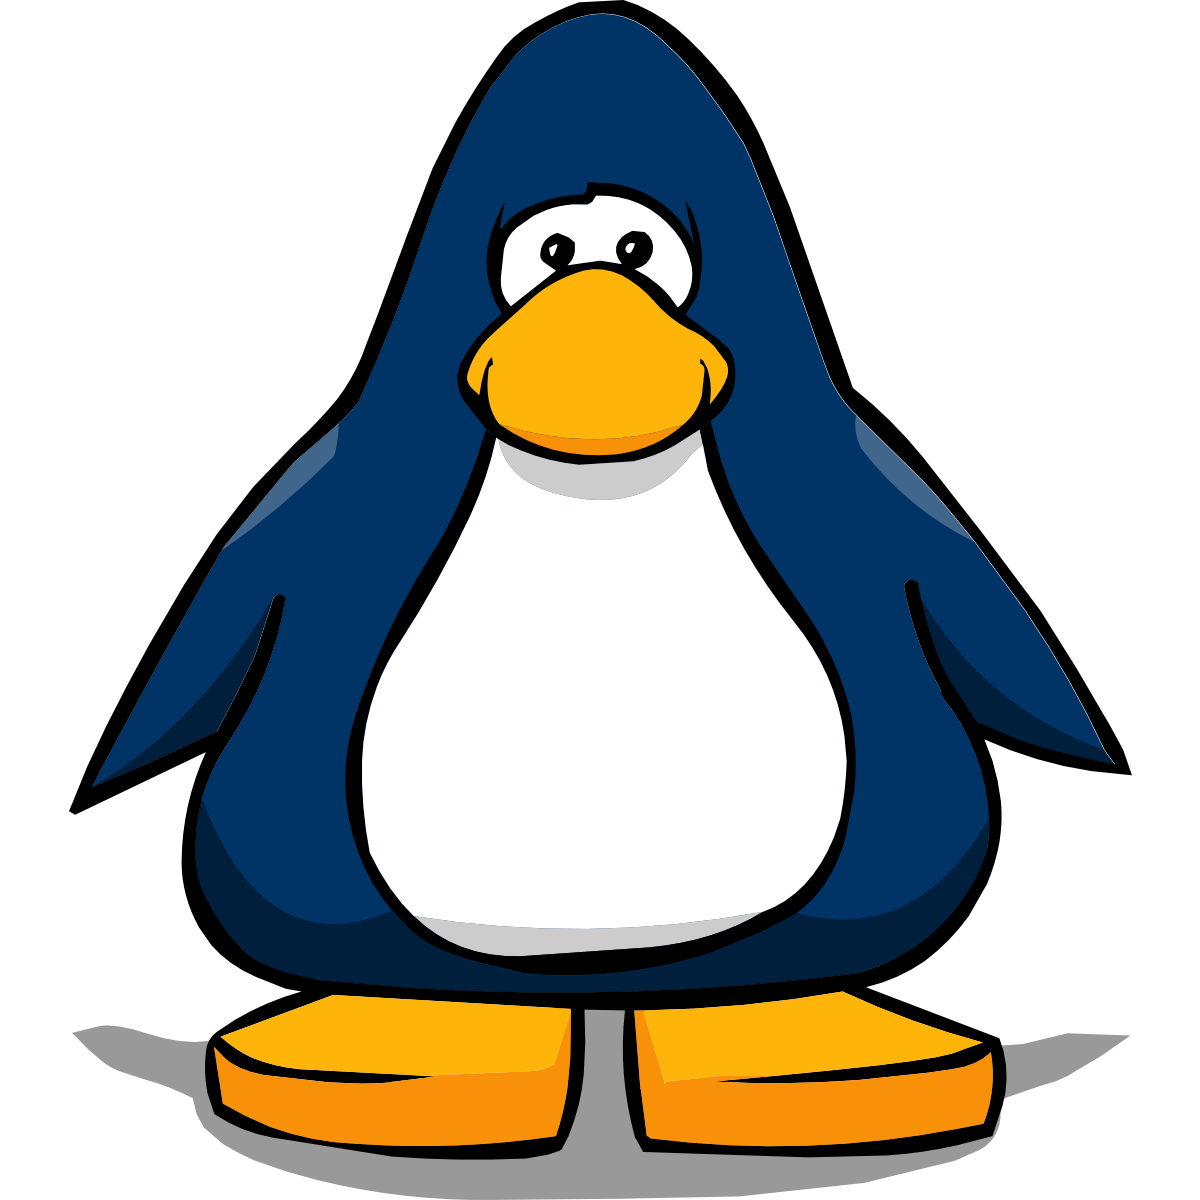 club penguin dating I got banned for the dumbest thing in the world lol if you enjoyed the video, make sure to leave a like and hit subscribe wwwtwittercom/thehealthycow -~.